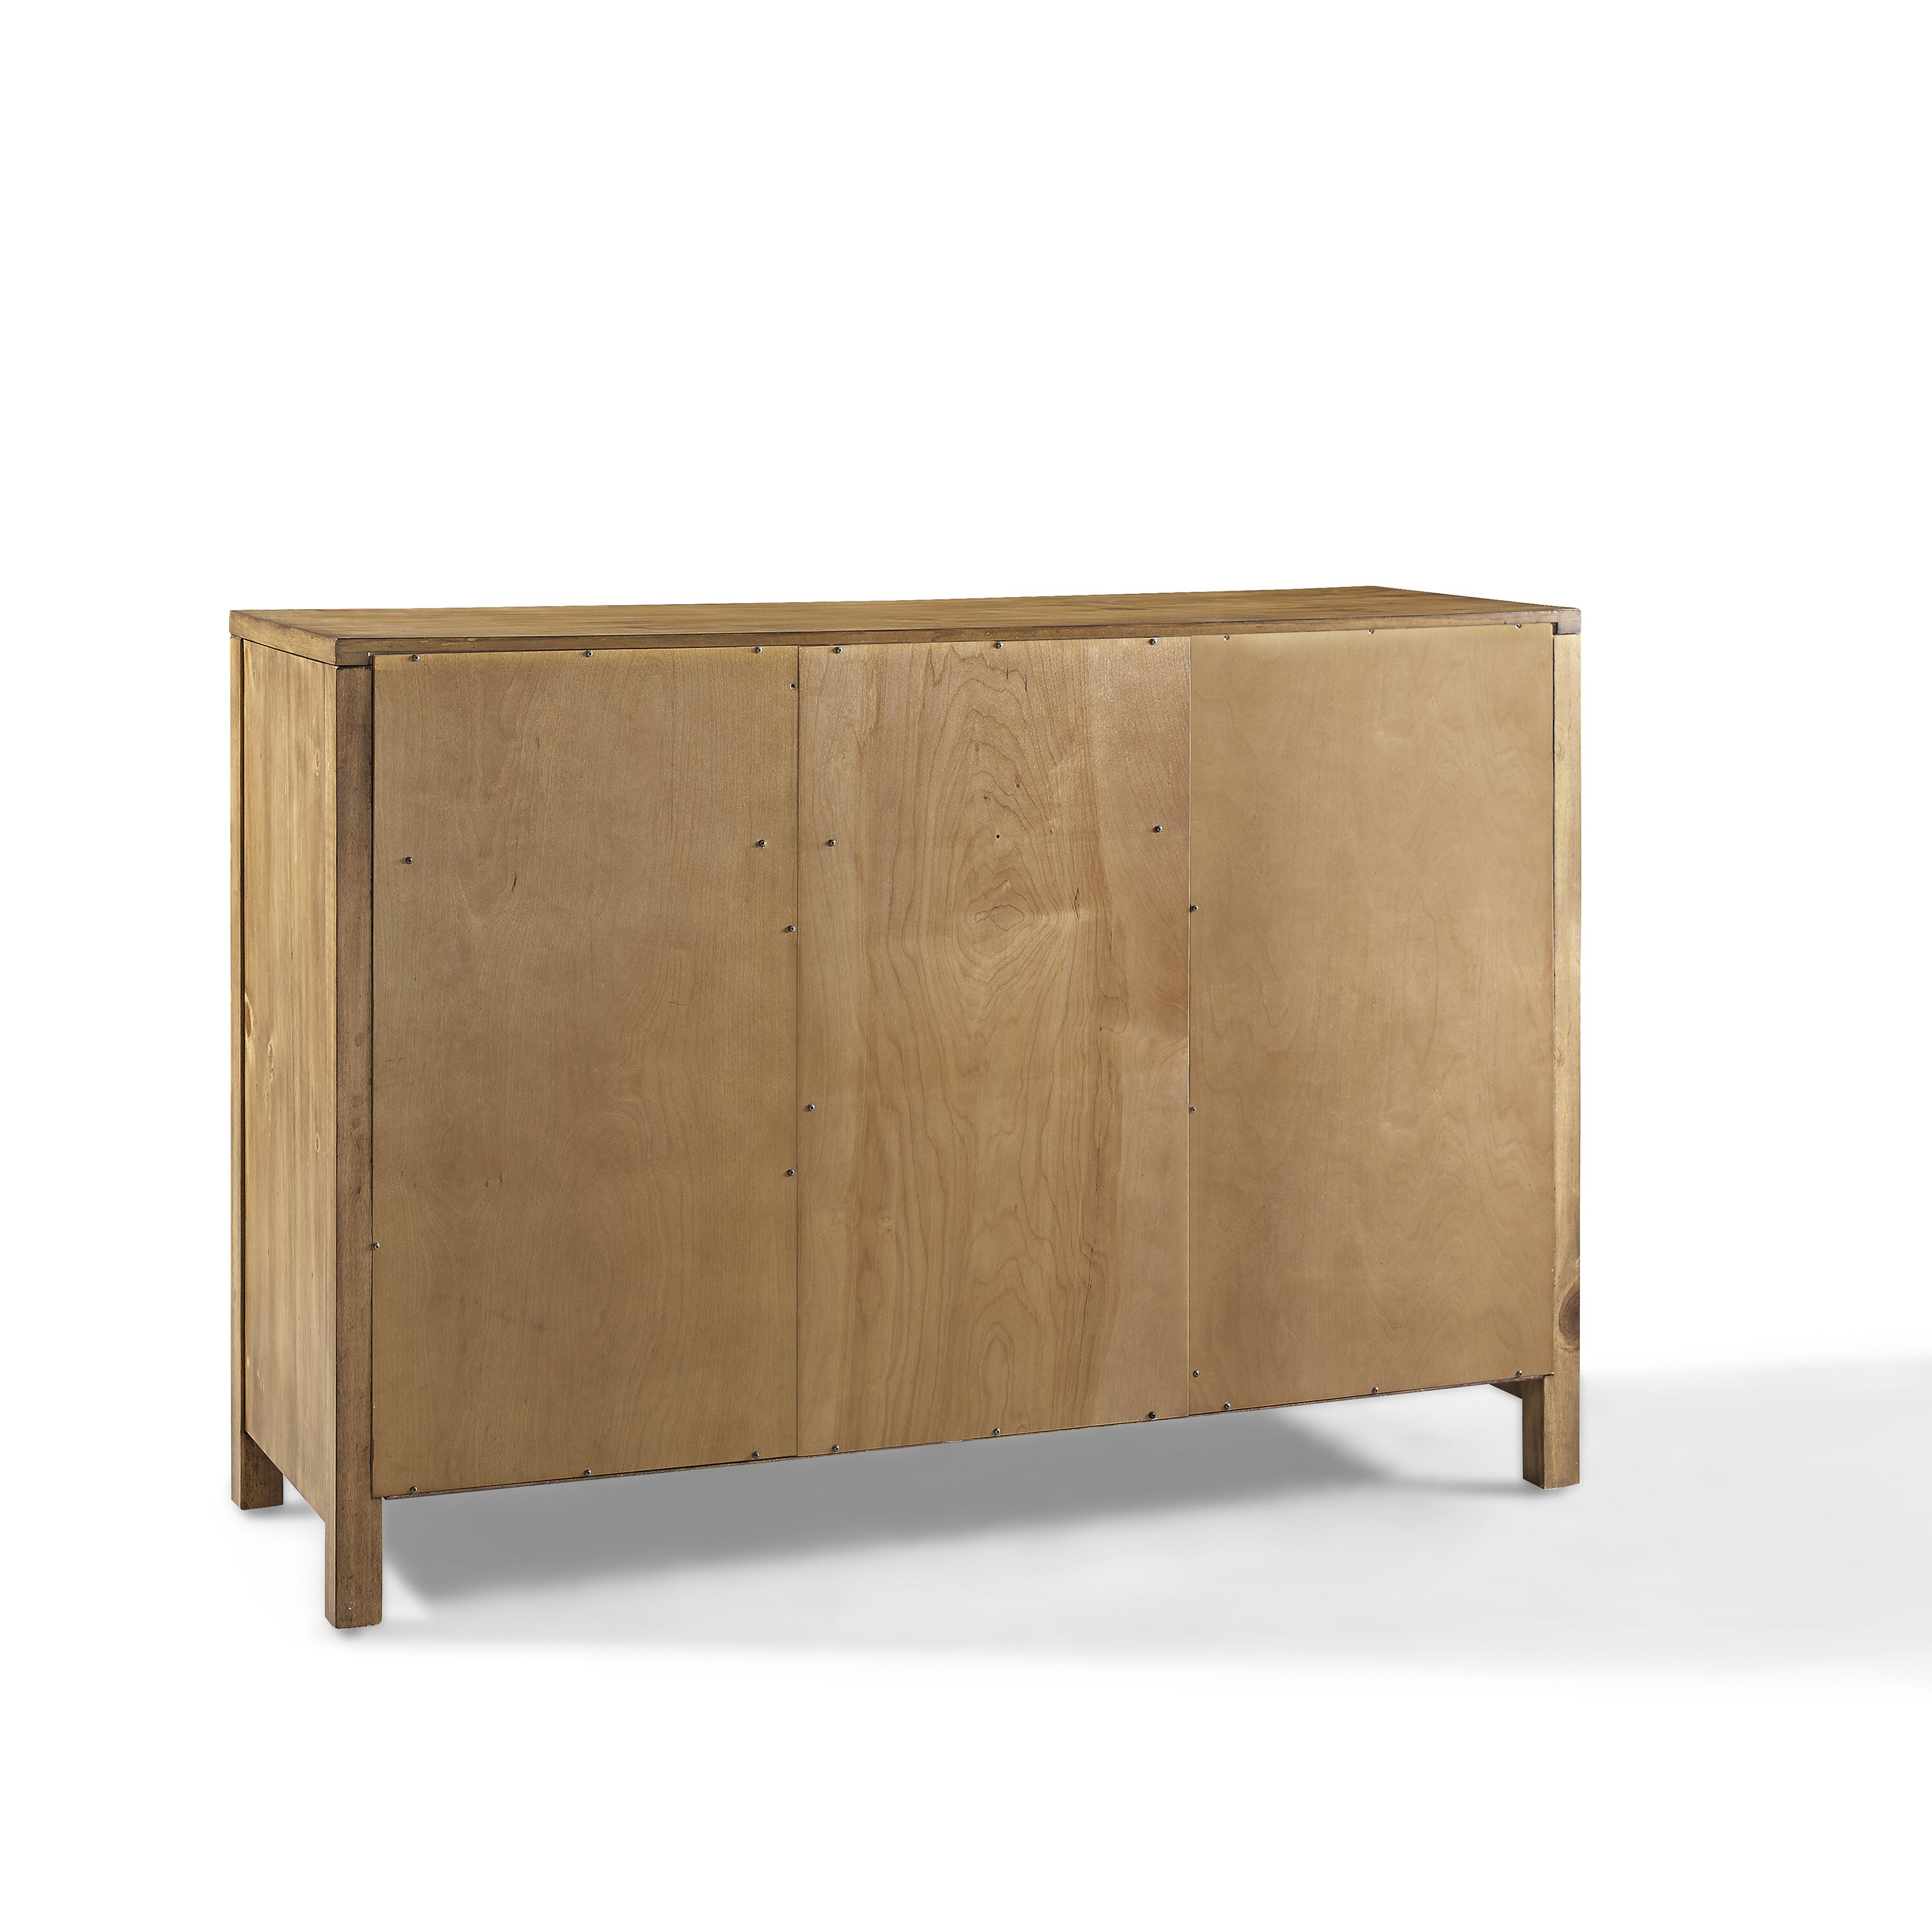 Trent austin design buffet reviews for Furniture 2 day shipping